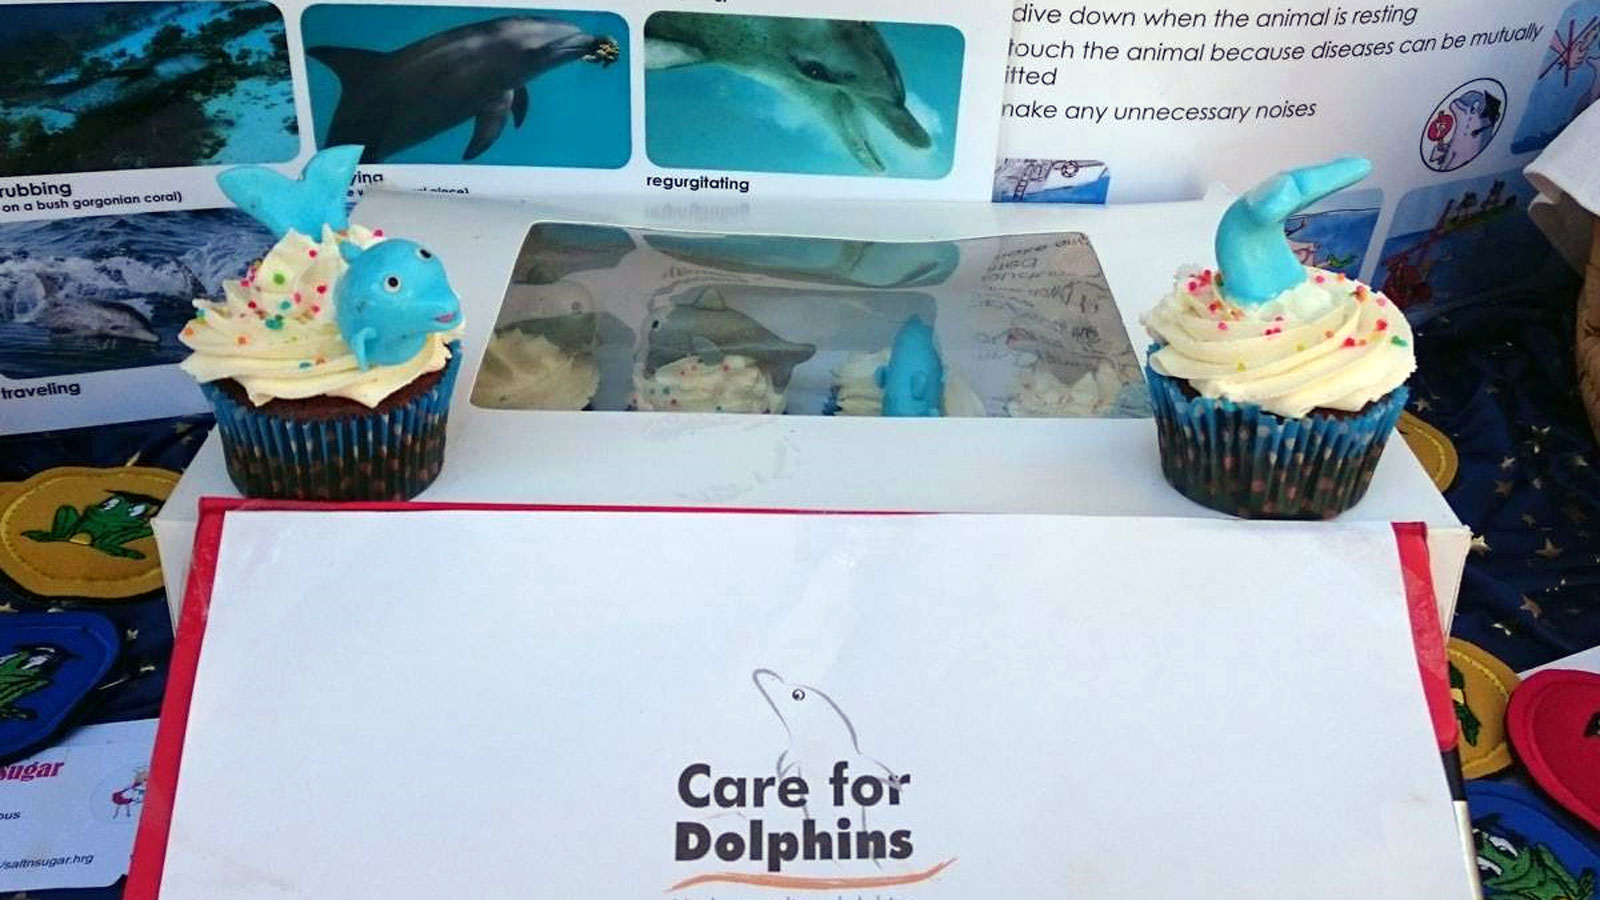 Care for Dolphins - Stand